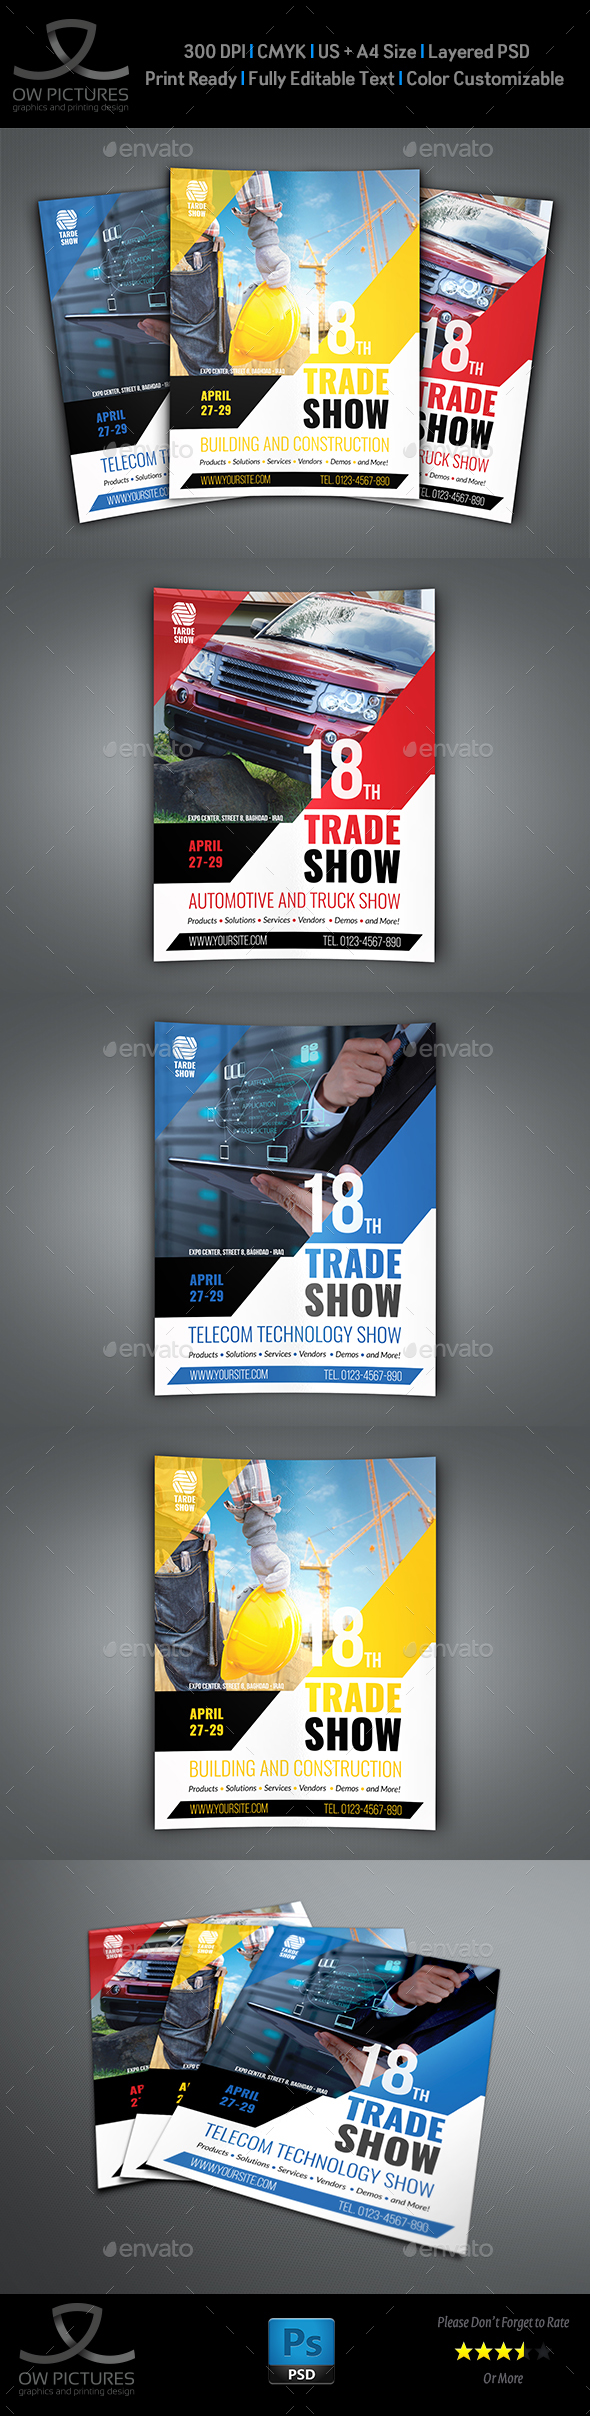 Trade Show Flyer Template - Flyers Print Templates